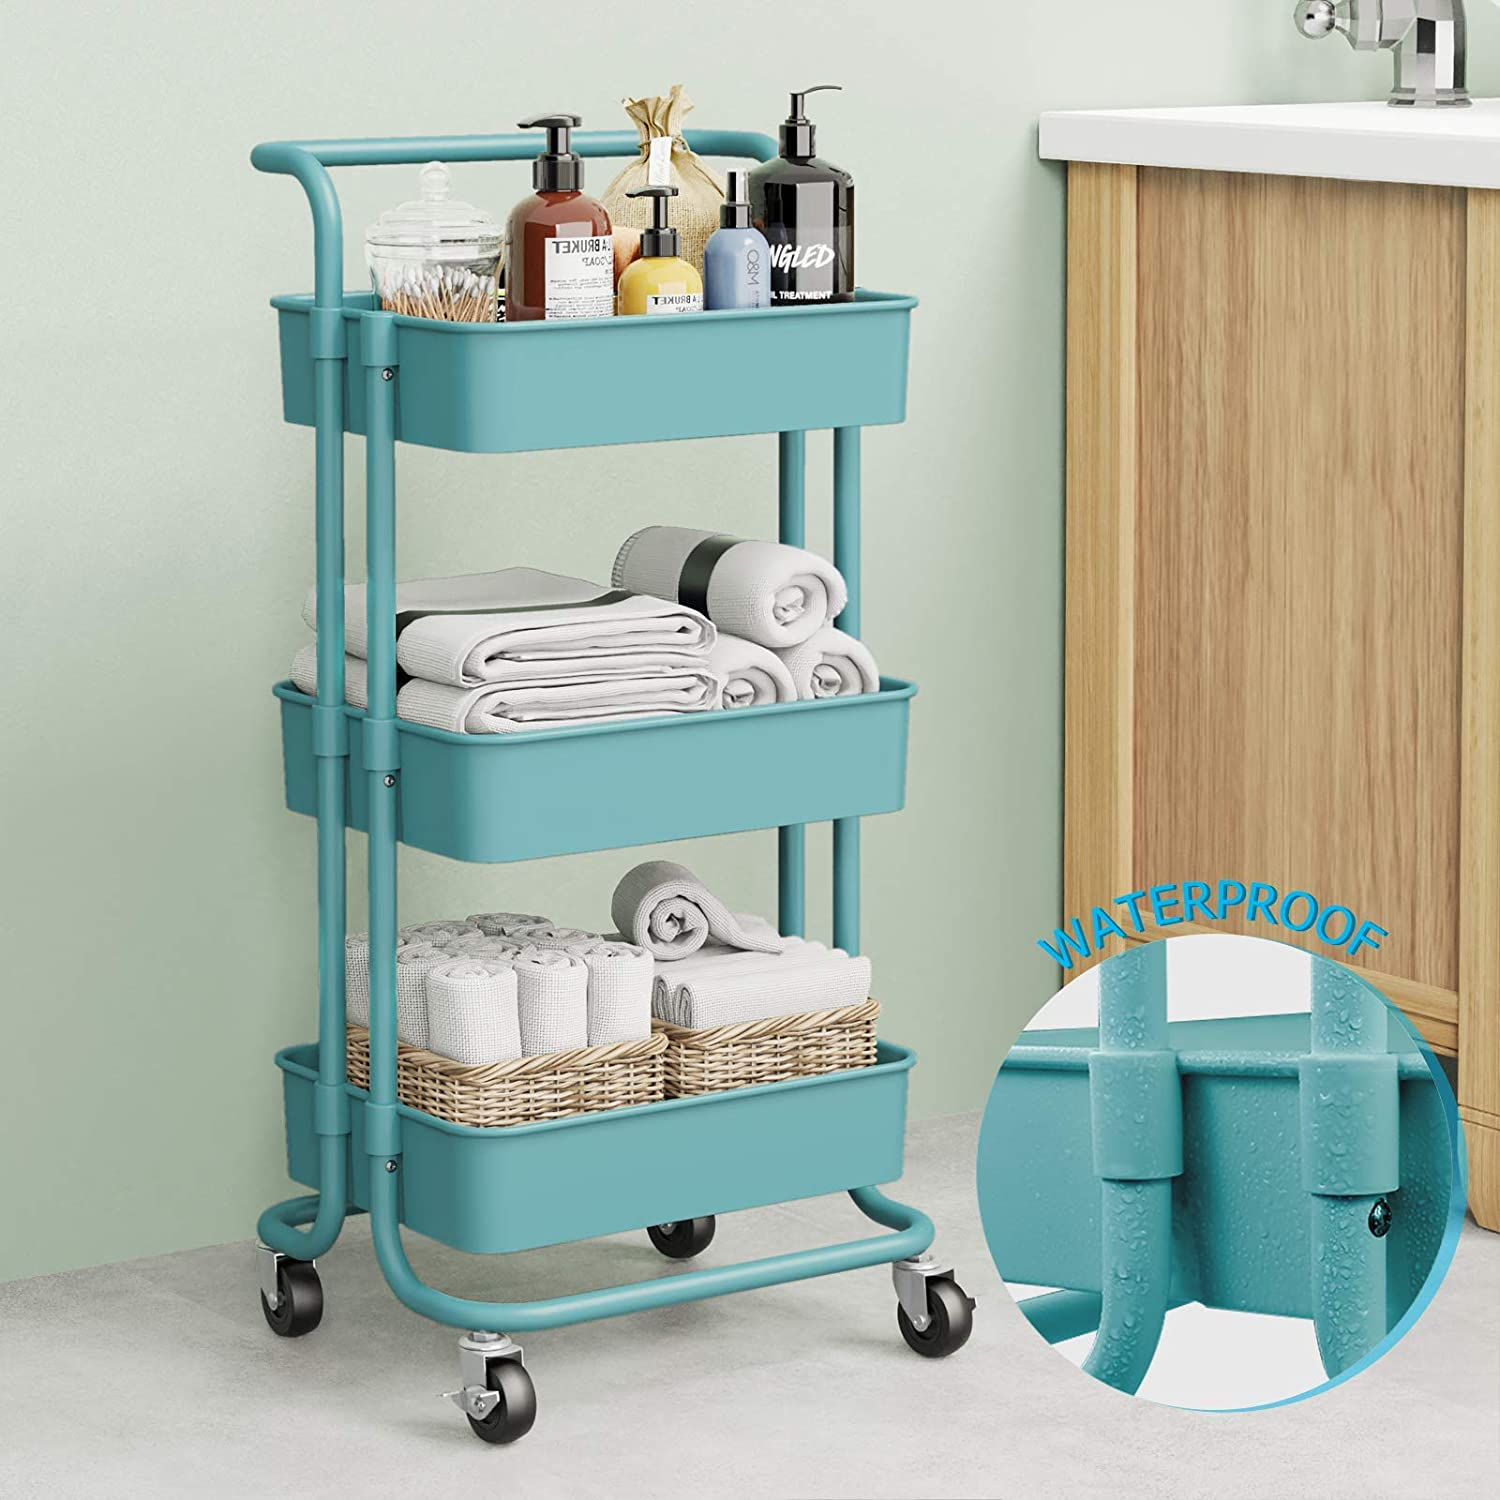 3 Tier Rolling Cart Rolling Utility Storage Cart with Handles and Roller Wheels for Kitchen, Storage (Blue)